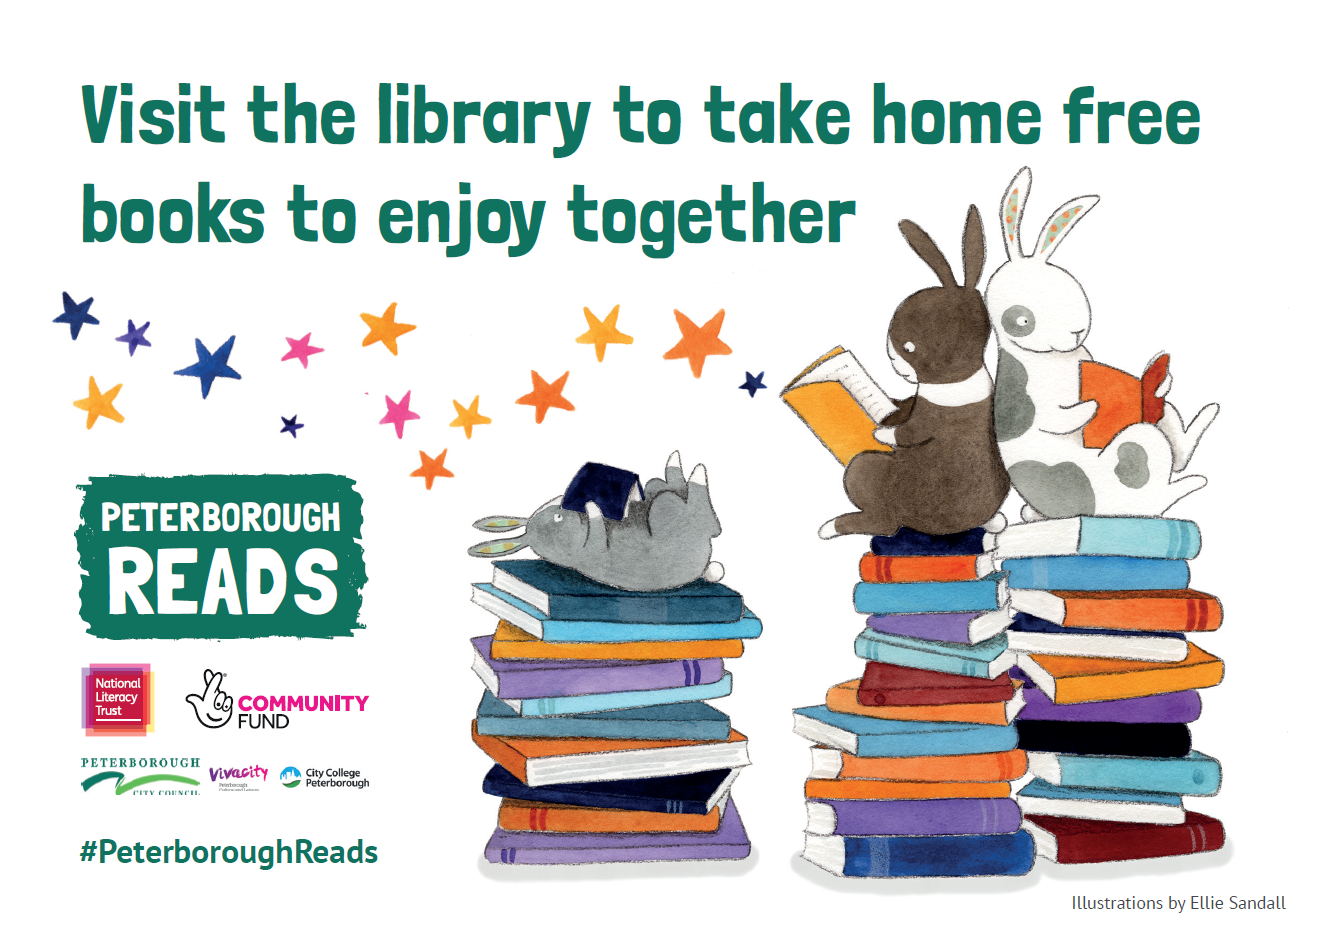 Visit the library to take home free books together